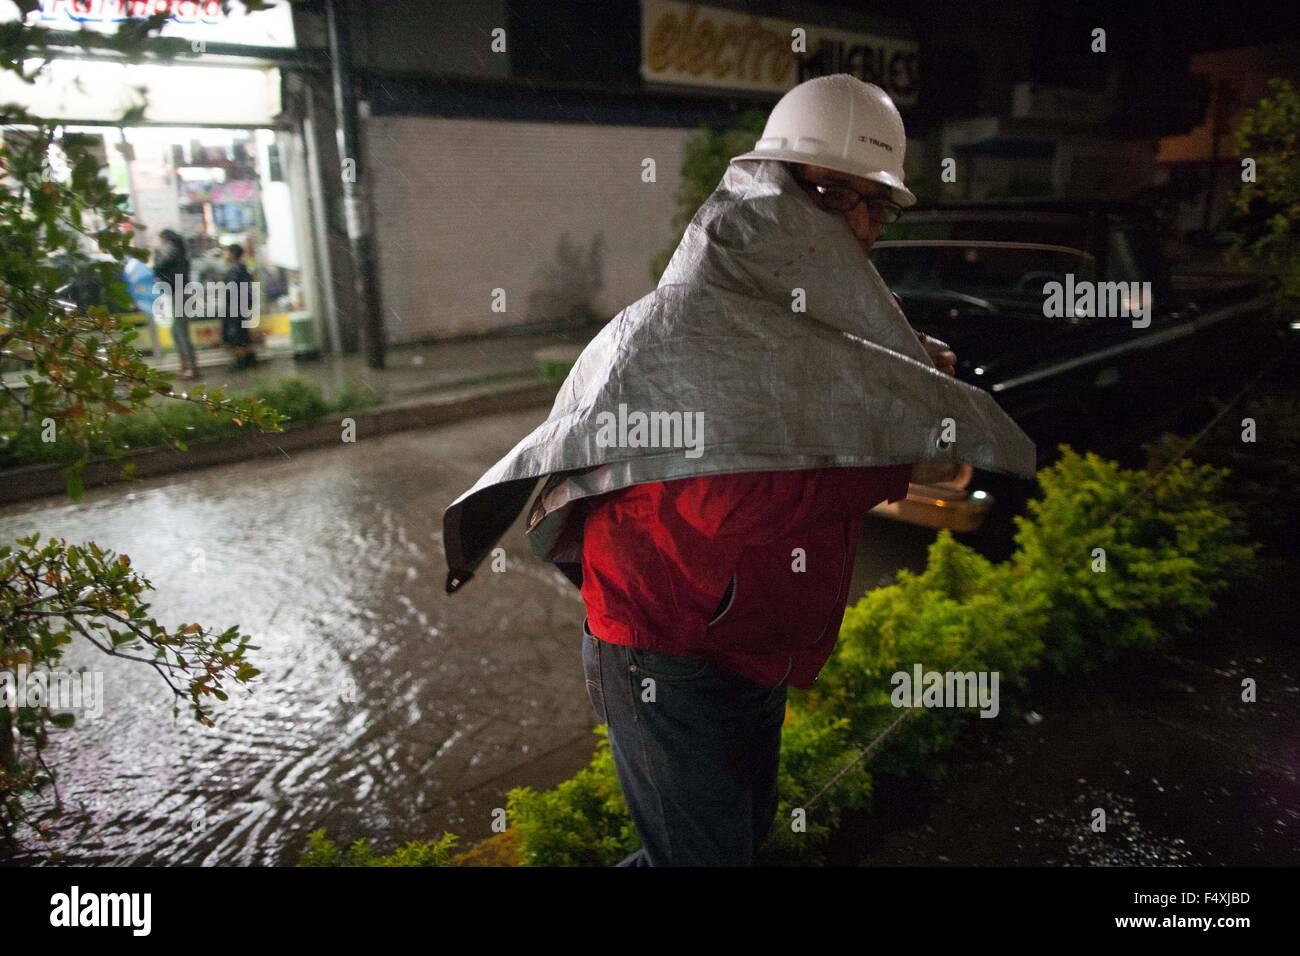 """Ameca, Mexico. 23rd Oct, 2015. A man protects himself from the rain caused by the hurricane """"Patricia"""" in Ameca, Stock Photo"""